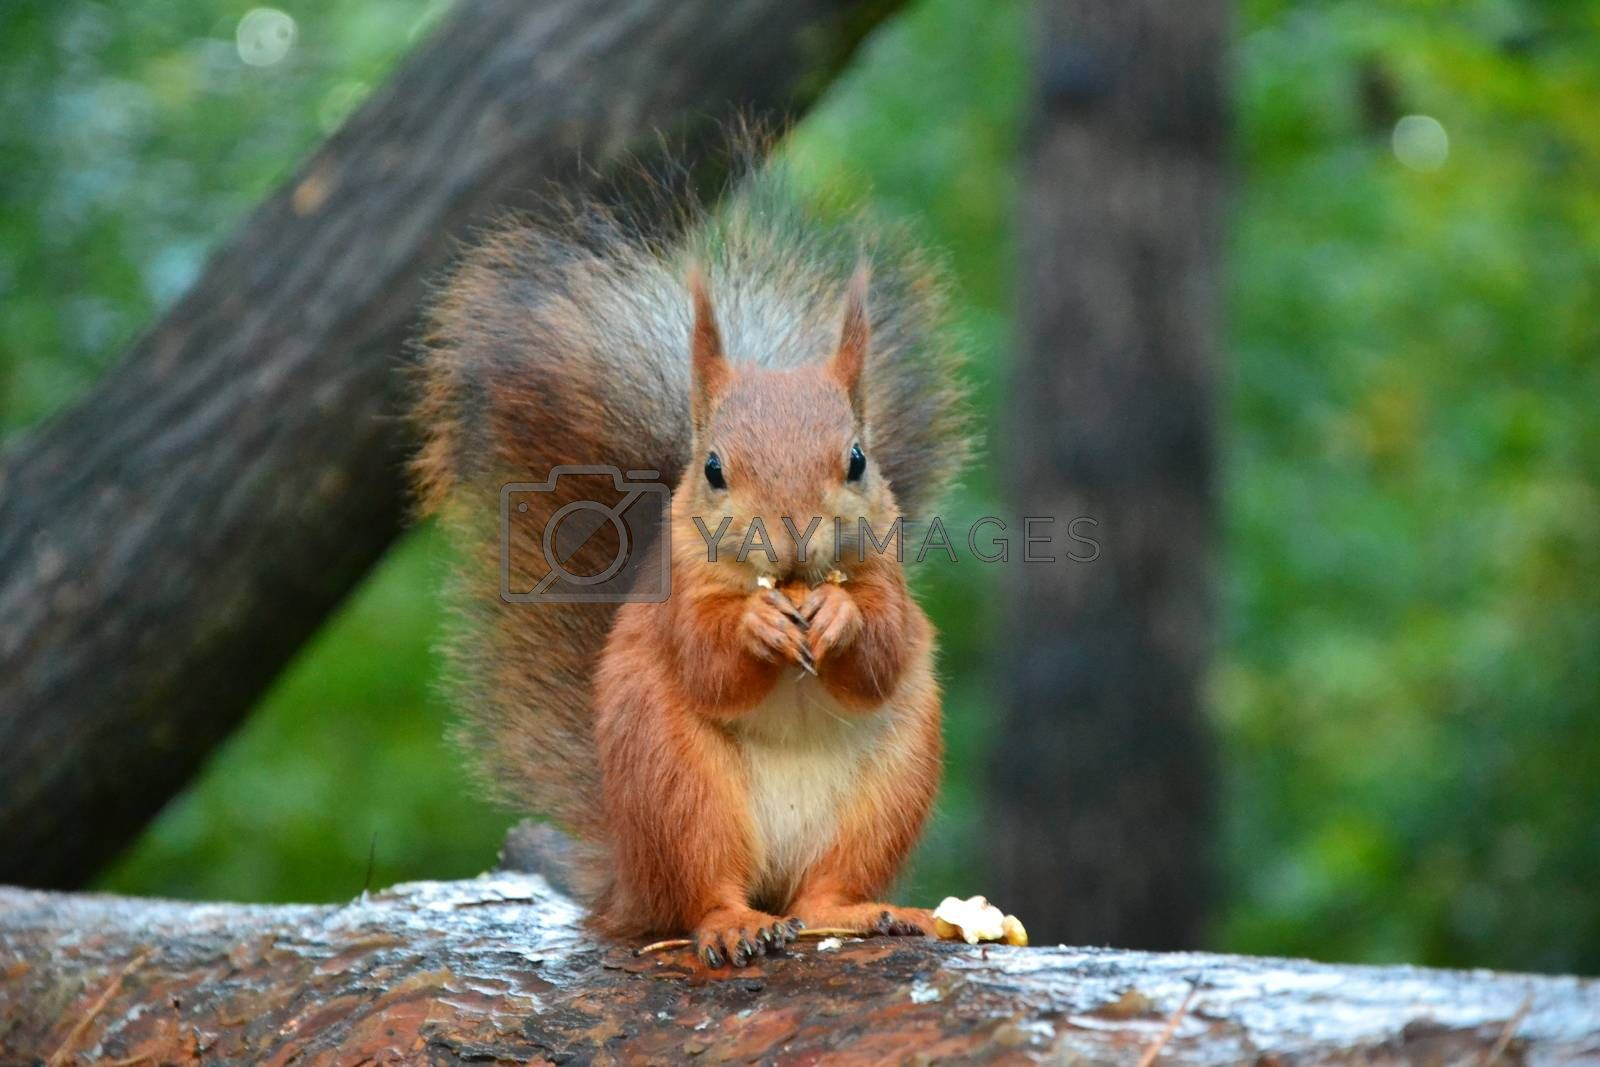 Red squirrel in the woods near a tree day